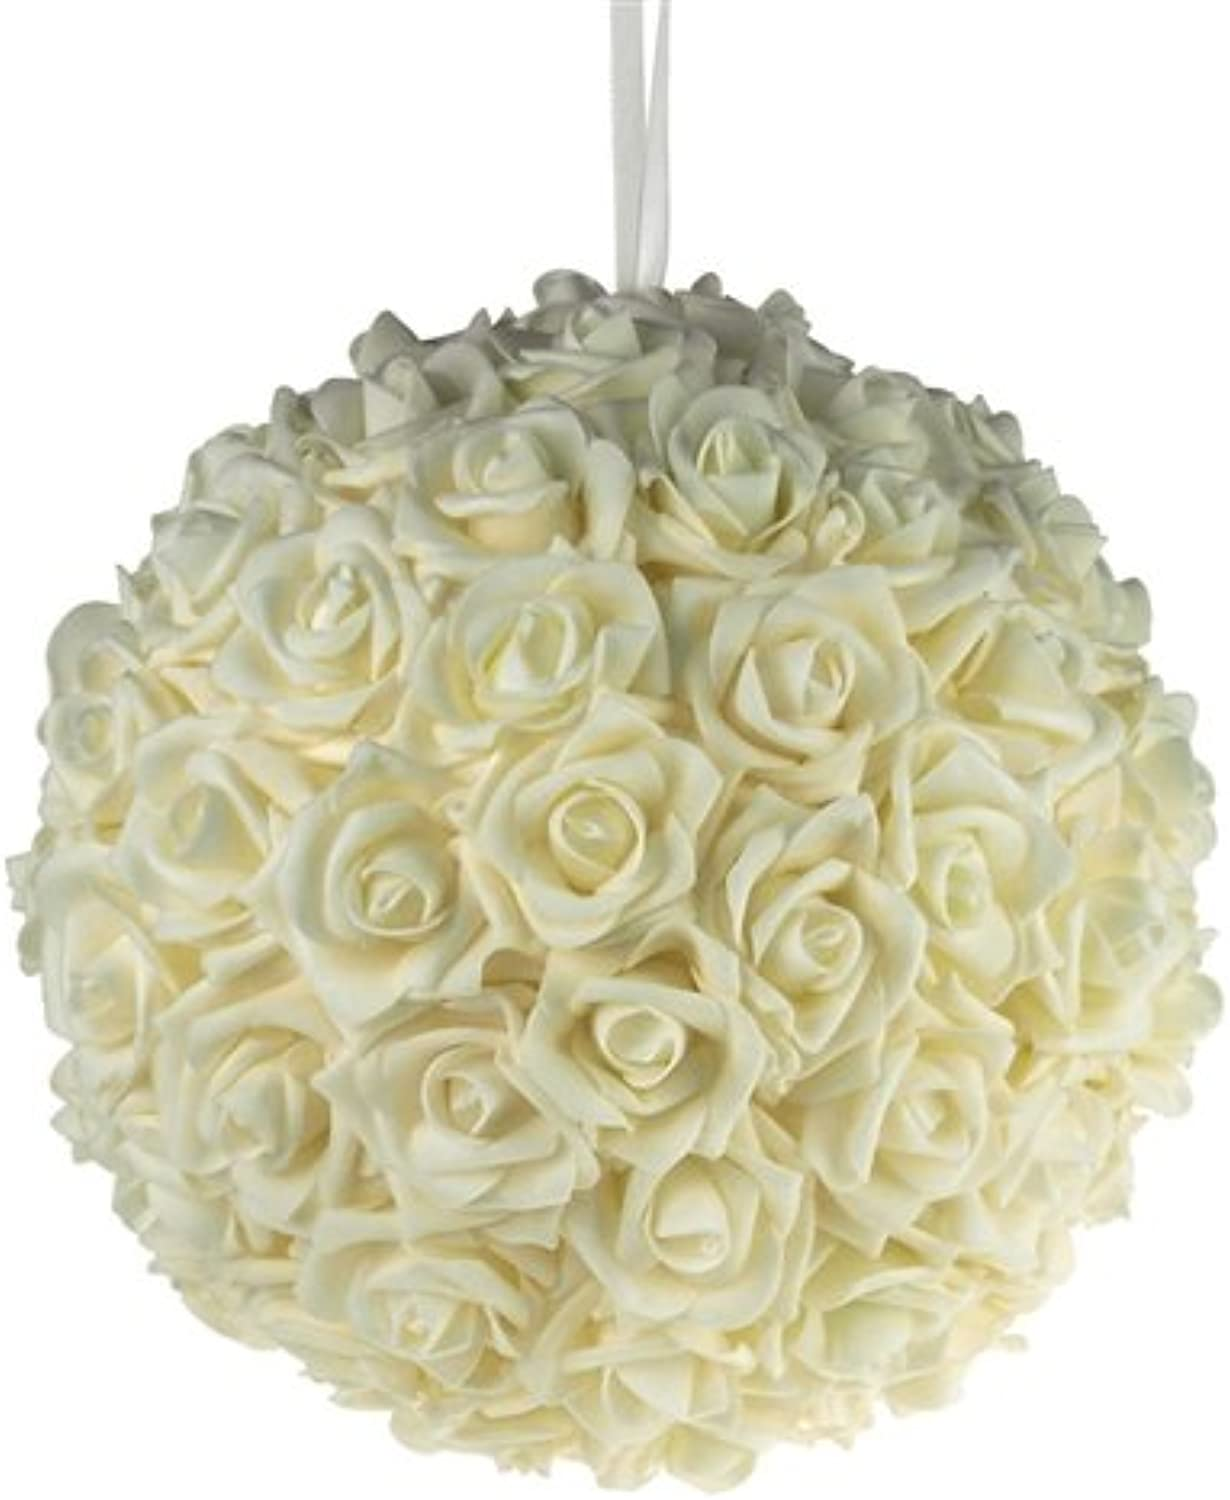 Homeford Firefly Imports Soft Touch Foam Kissing Ball Wedding Centerpiece, 12-Inch, Ivory,